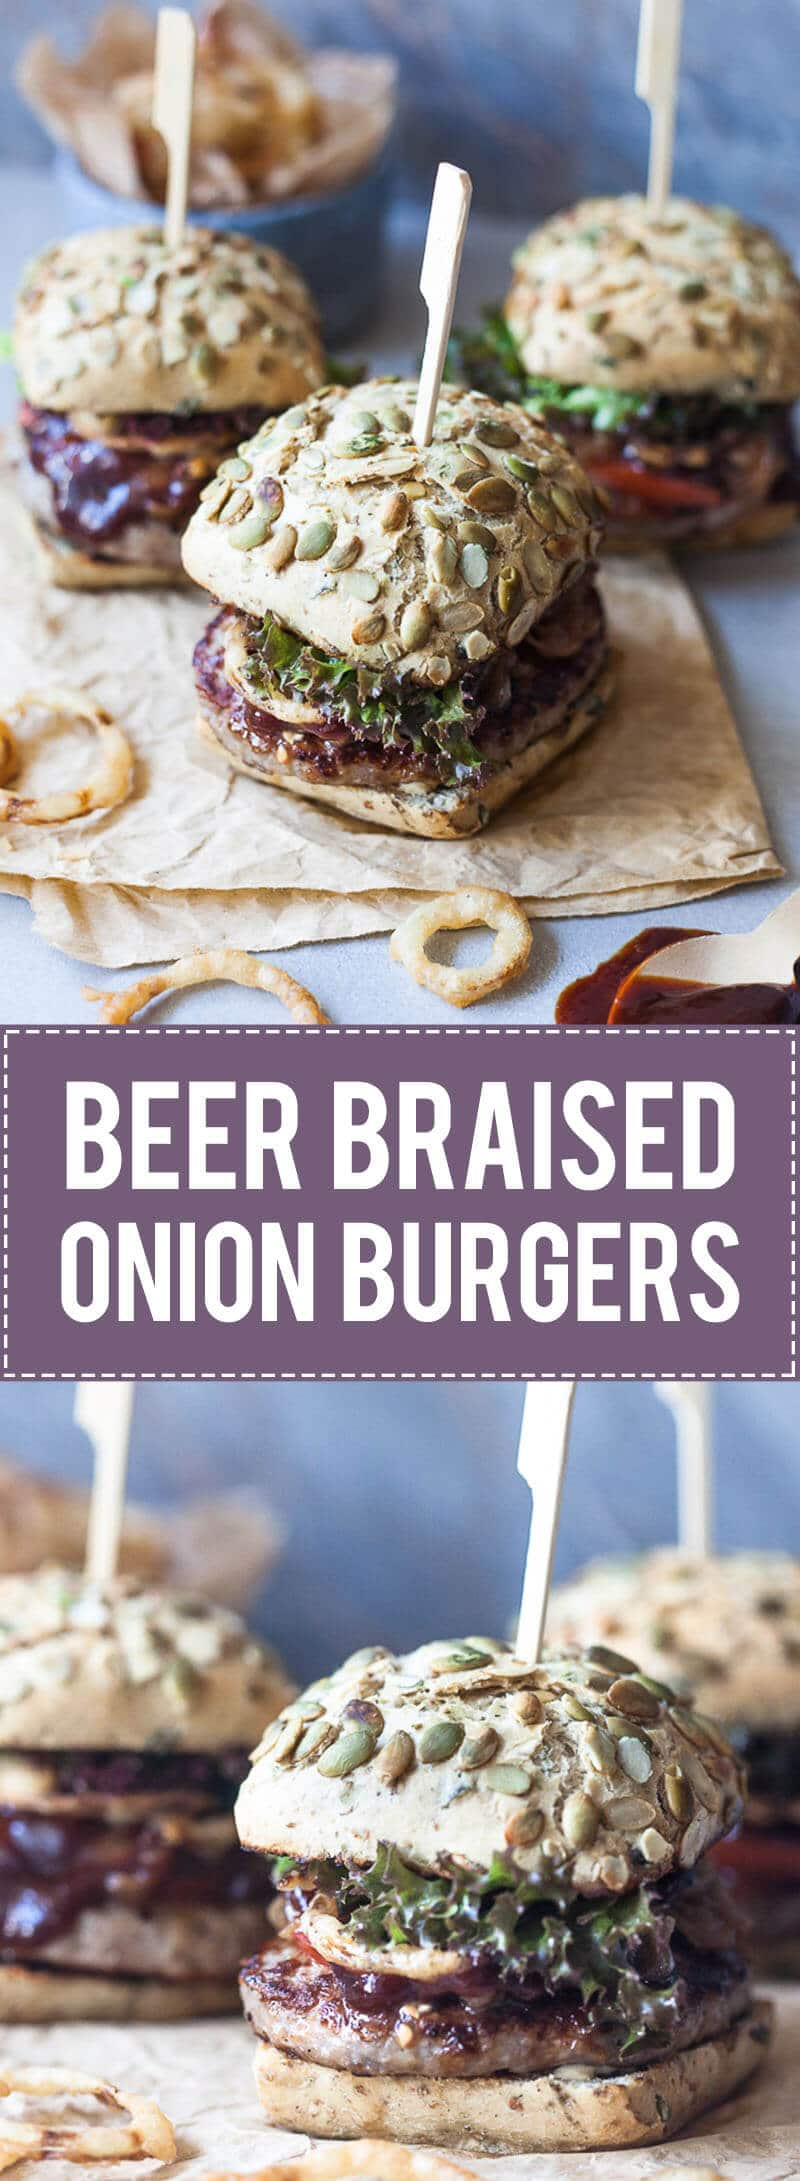 Beer Braised Onion Burgers are the perfect grill recipe! Topped with Crispy Onion Rings for extra crunch. | www.vibrantplate.com